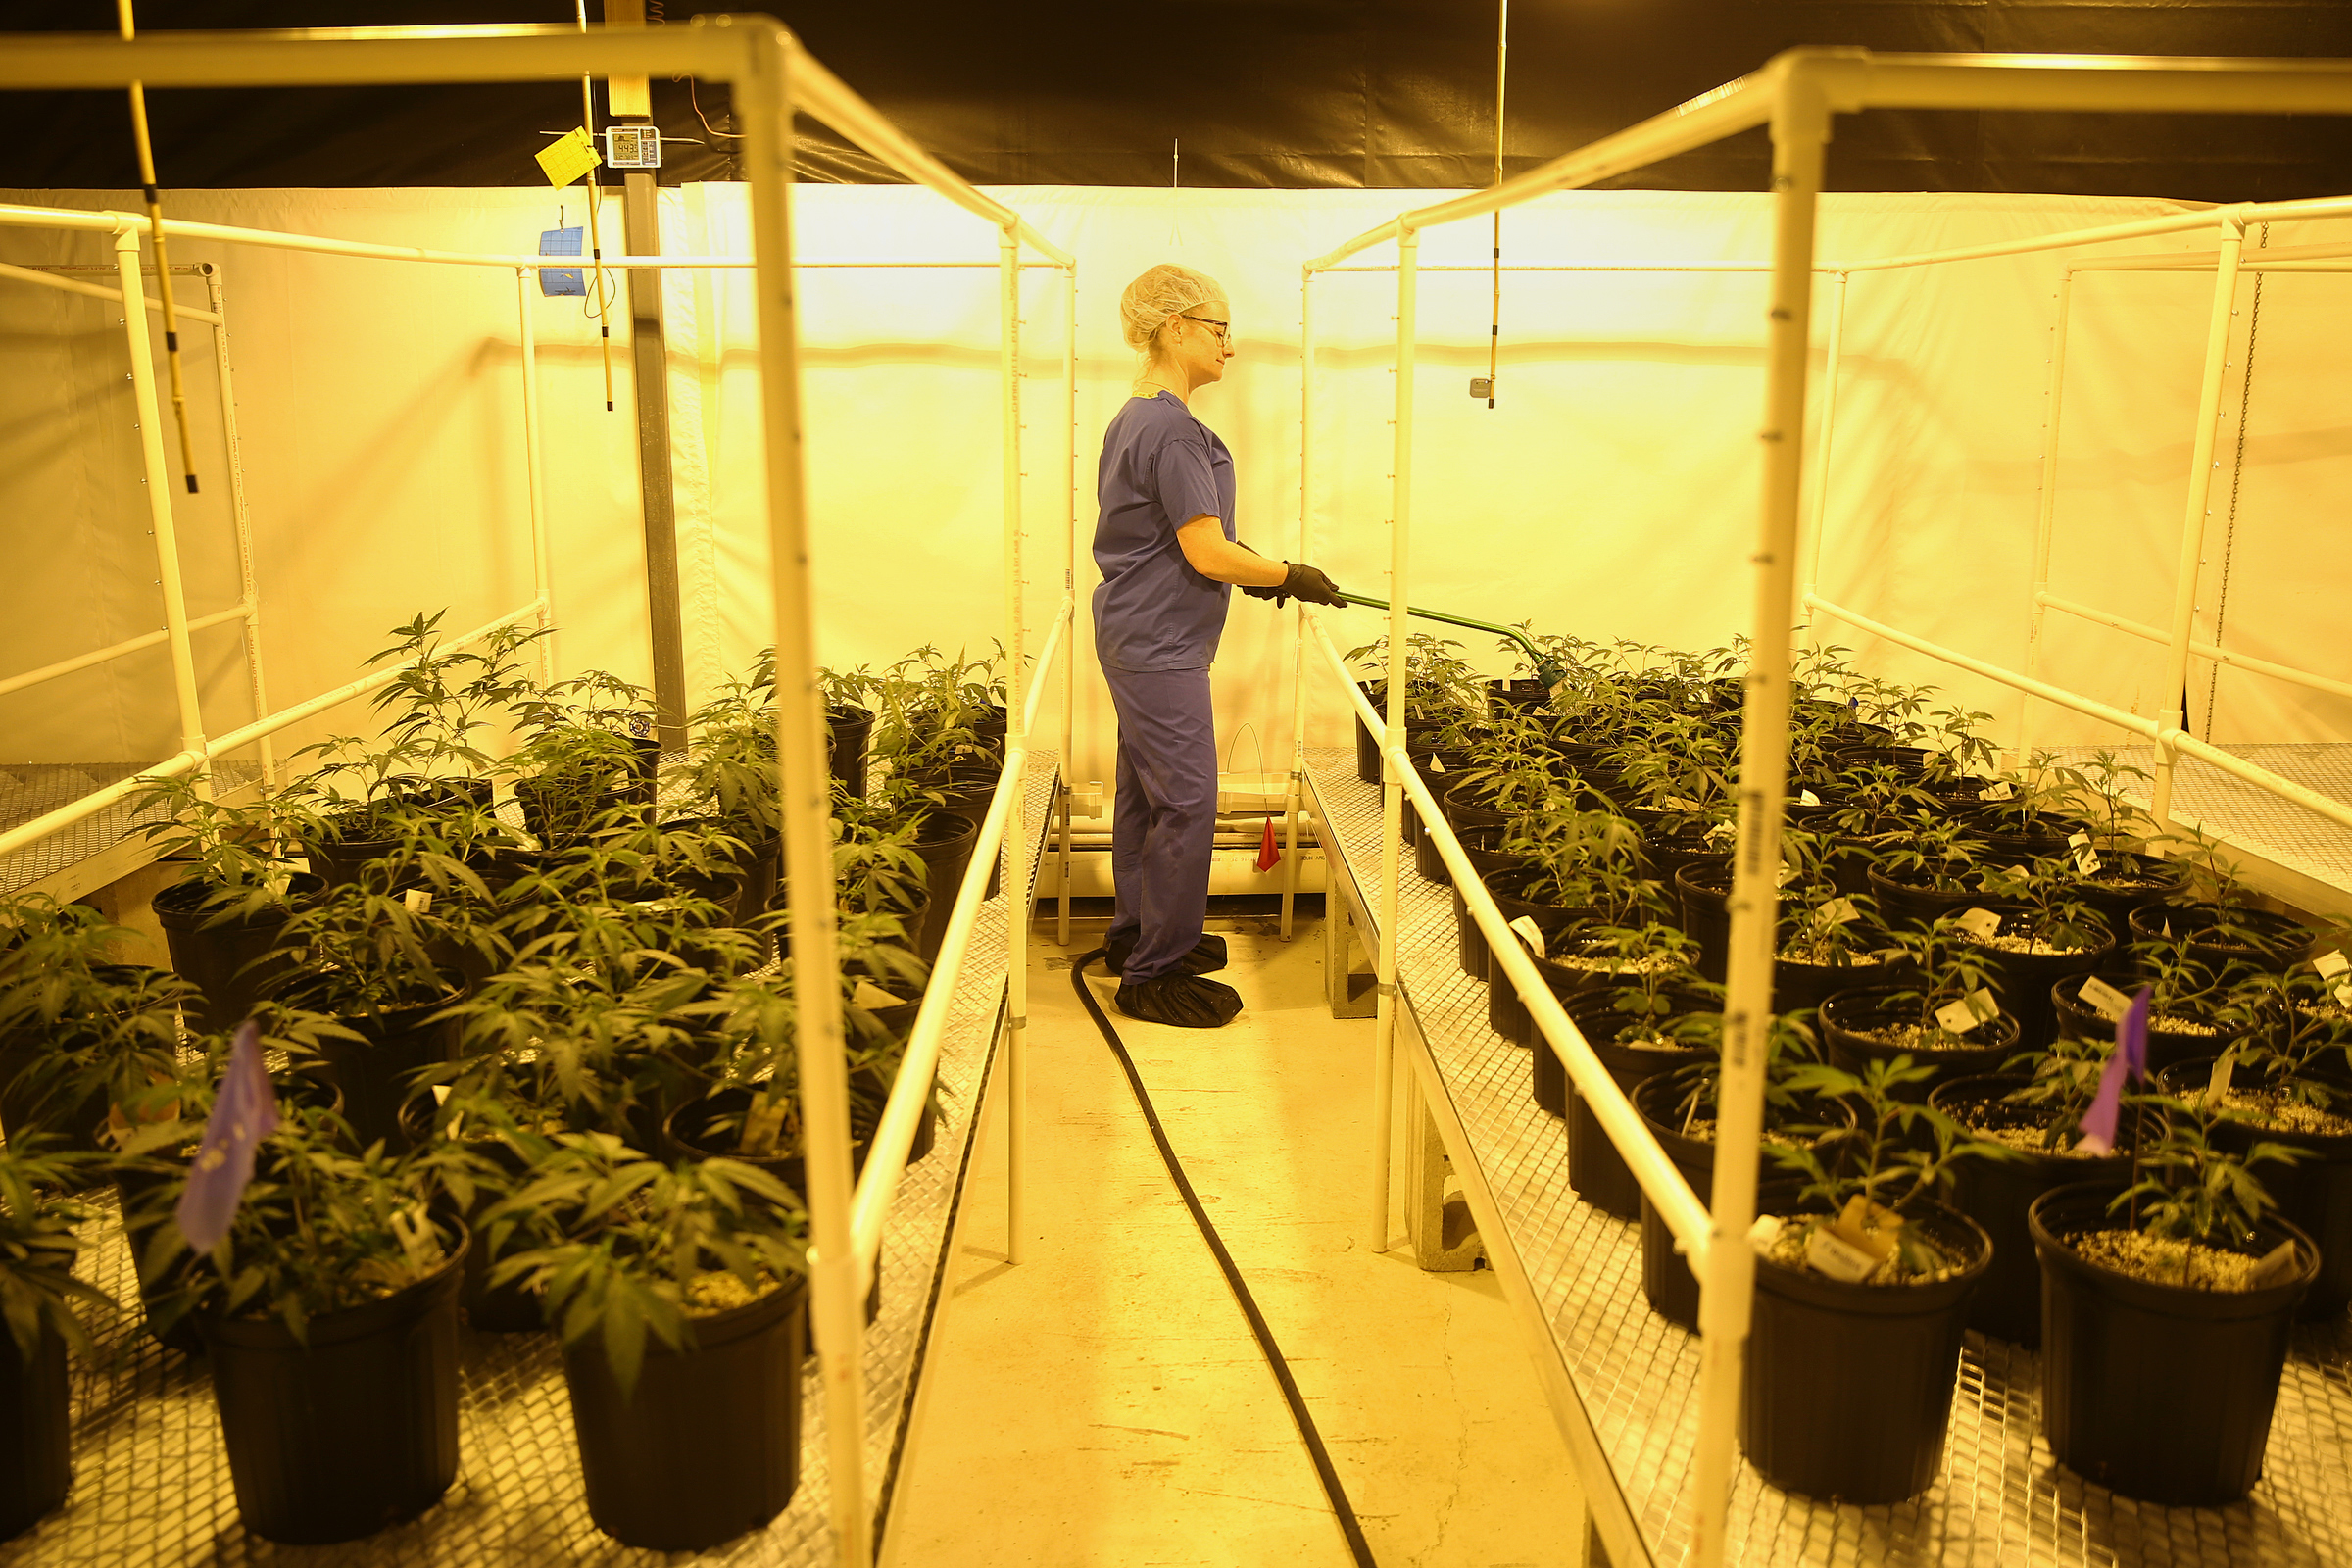 Heather Randazzo, a grower, feeds marijuana plants approaching the flowering stage at the Compassionate Care Foundation medical marijuana dispensary and cutivation center in Egg Harbor Township, N.J.